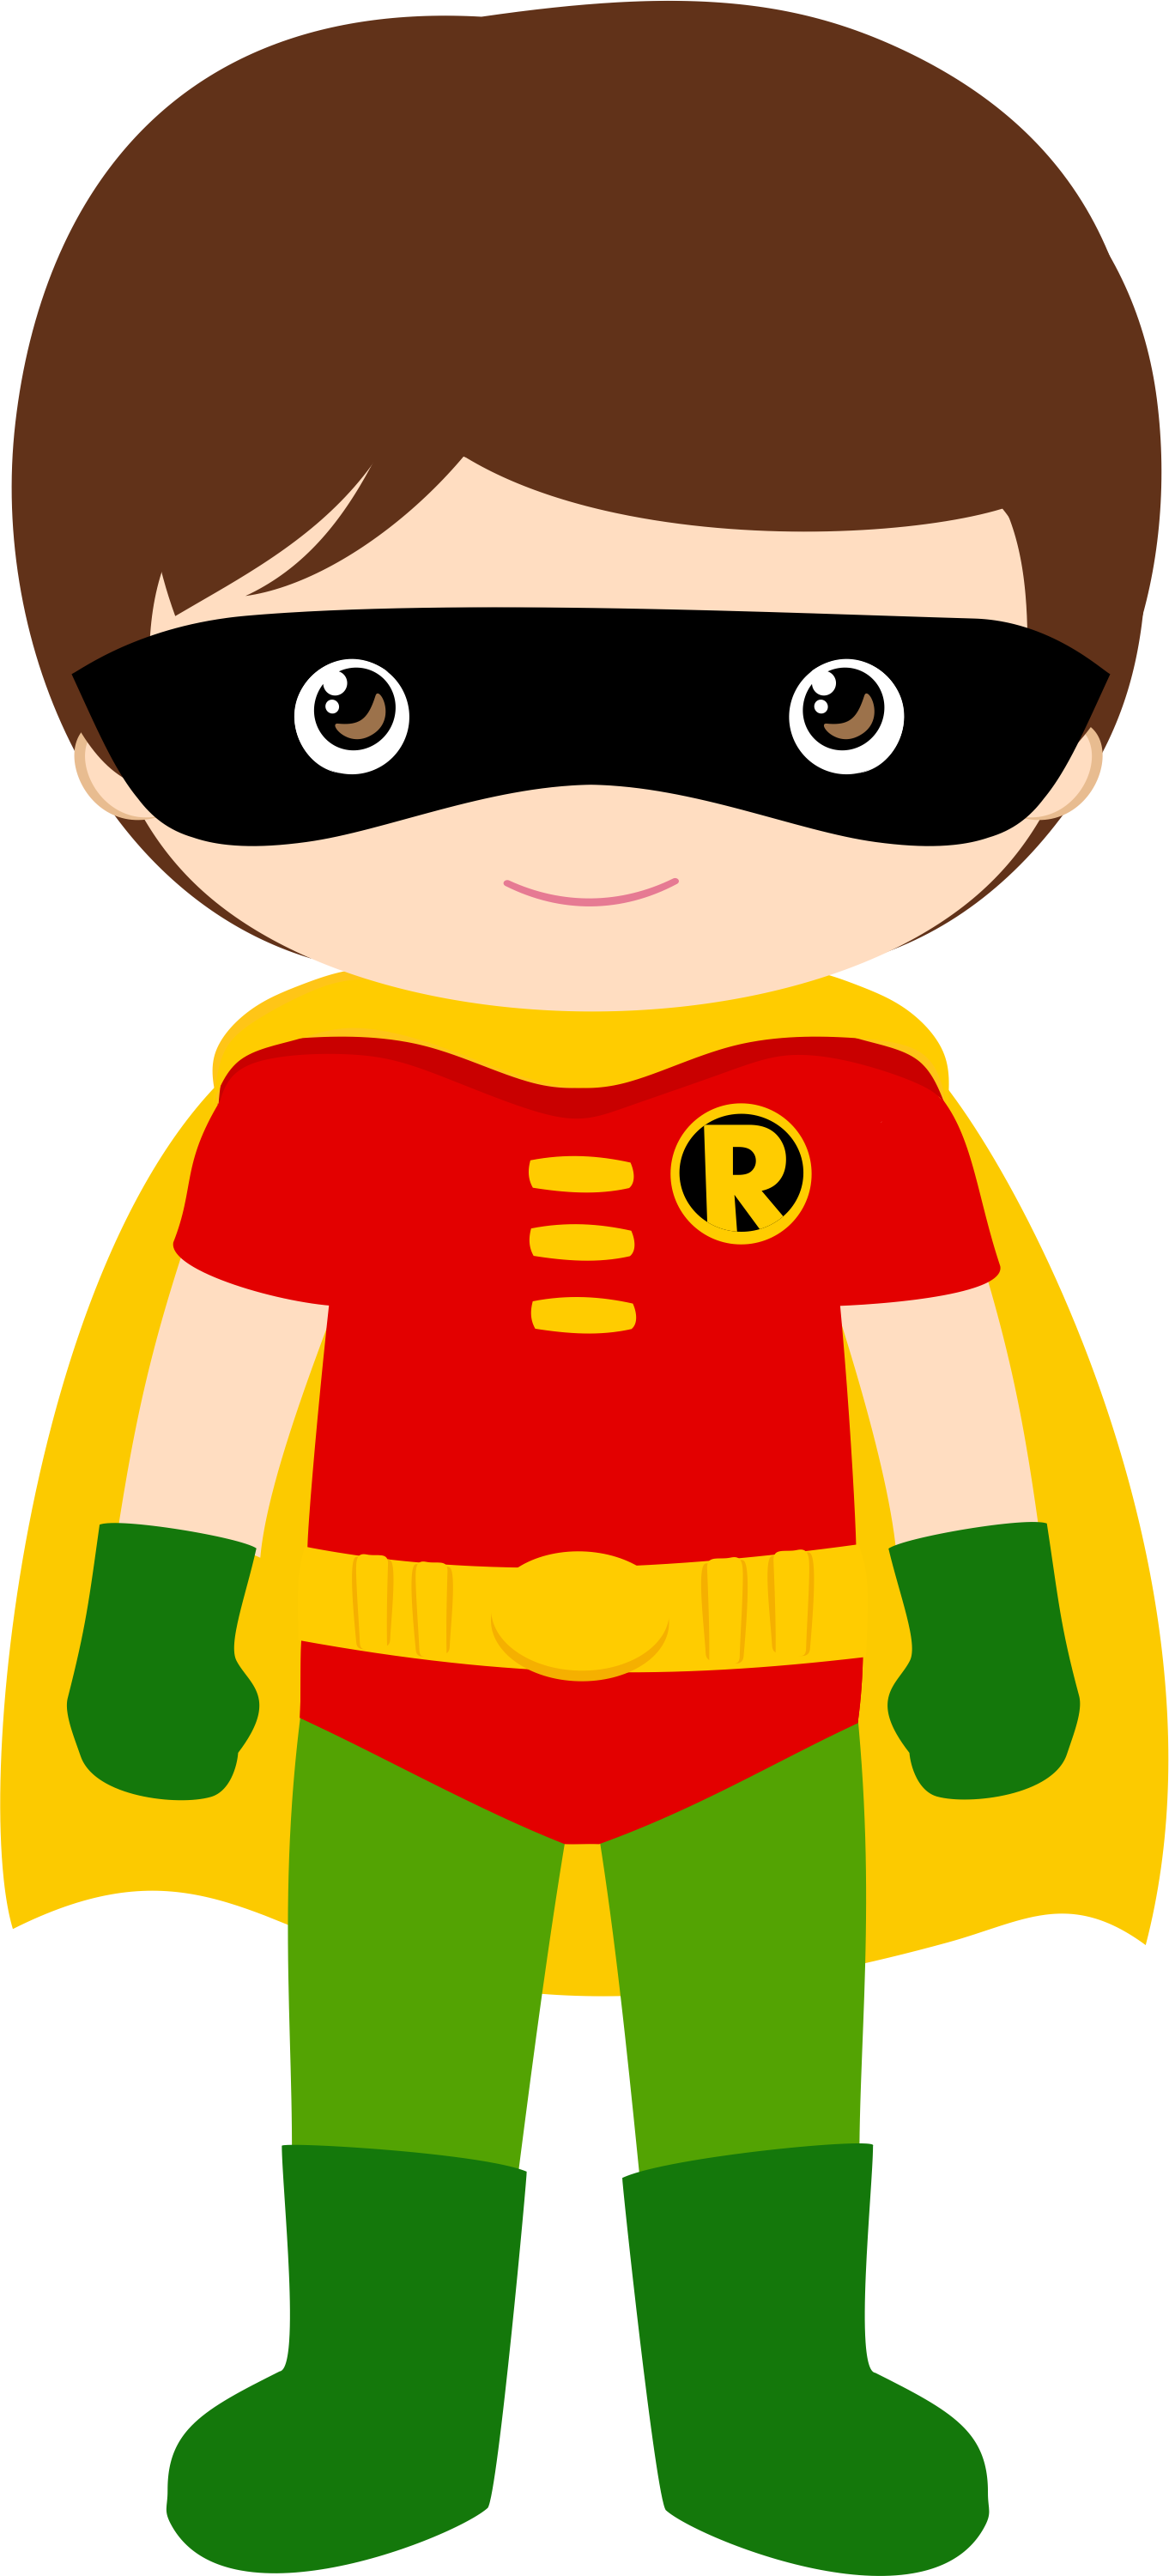 Robin superhero clipart transparent download Pin by Tiffany Mccollum on class room | Superhero party ... transparent download